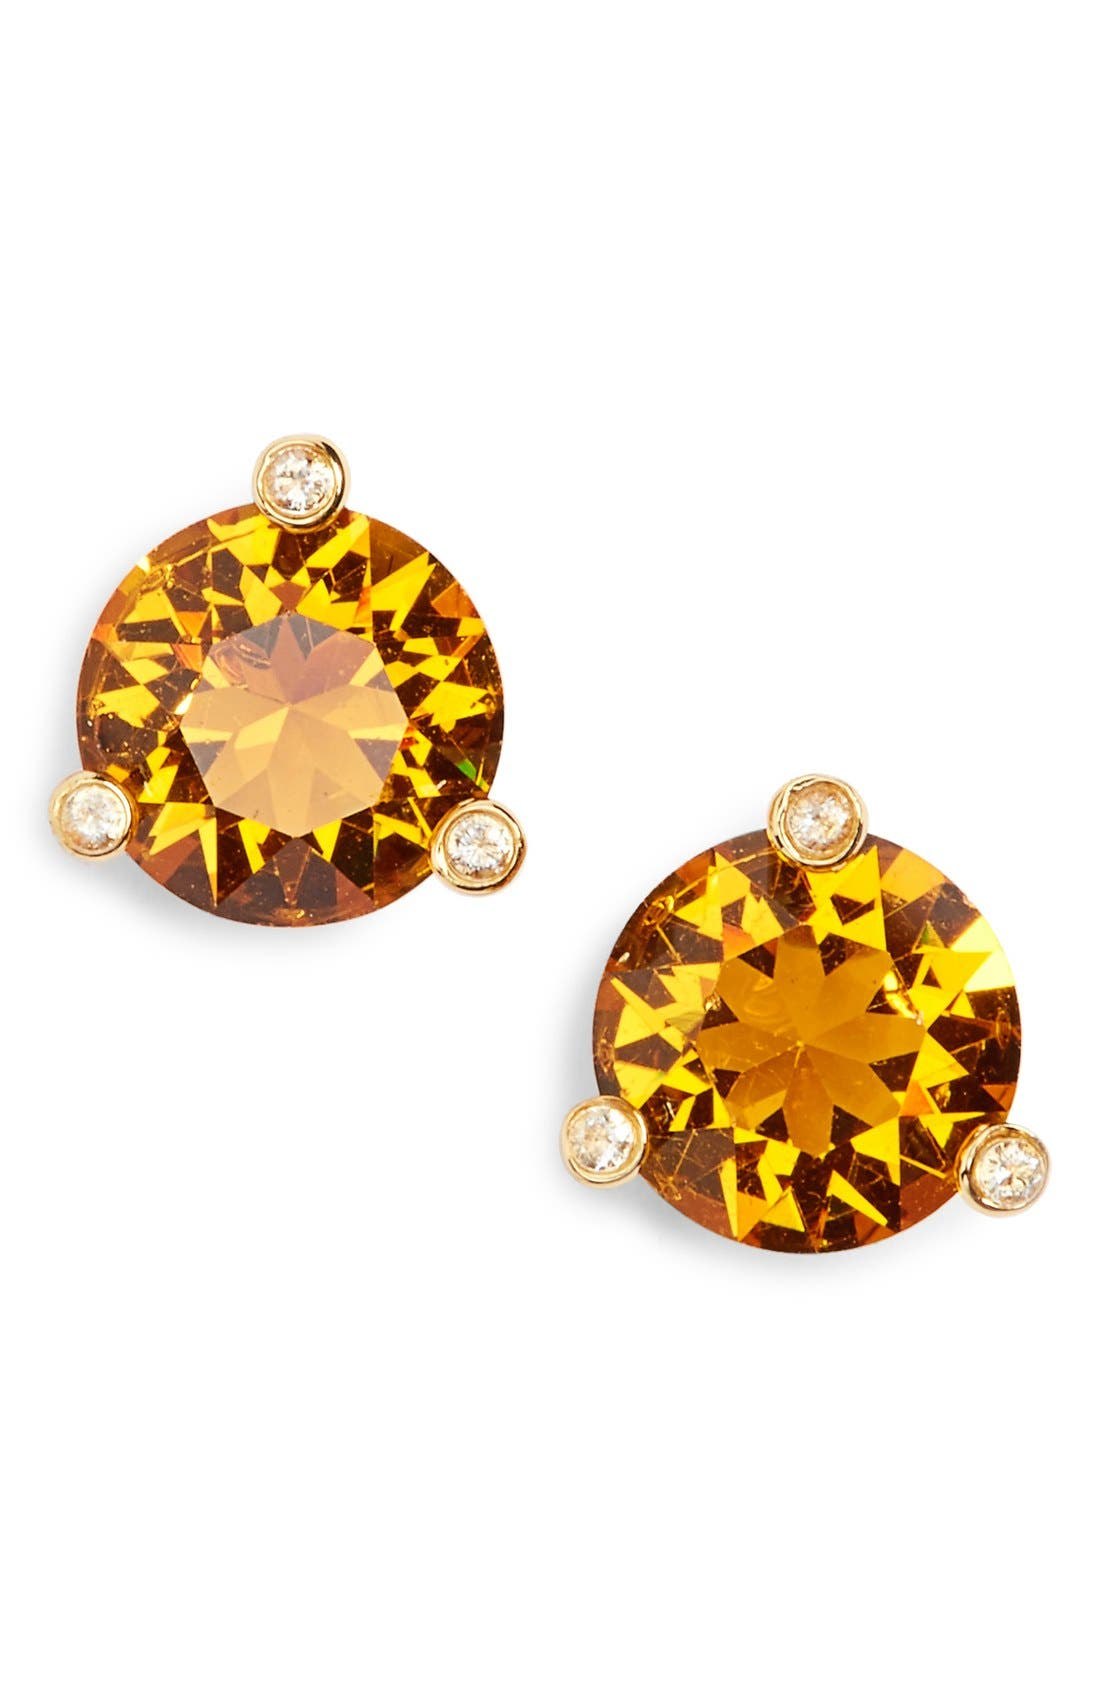 Main Image - kate spade new york 'rise & shine' stud earrings